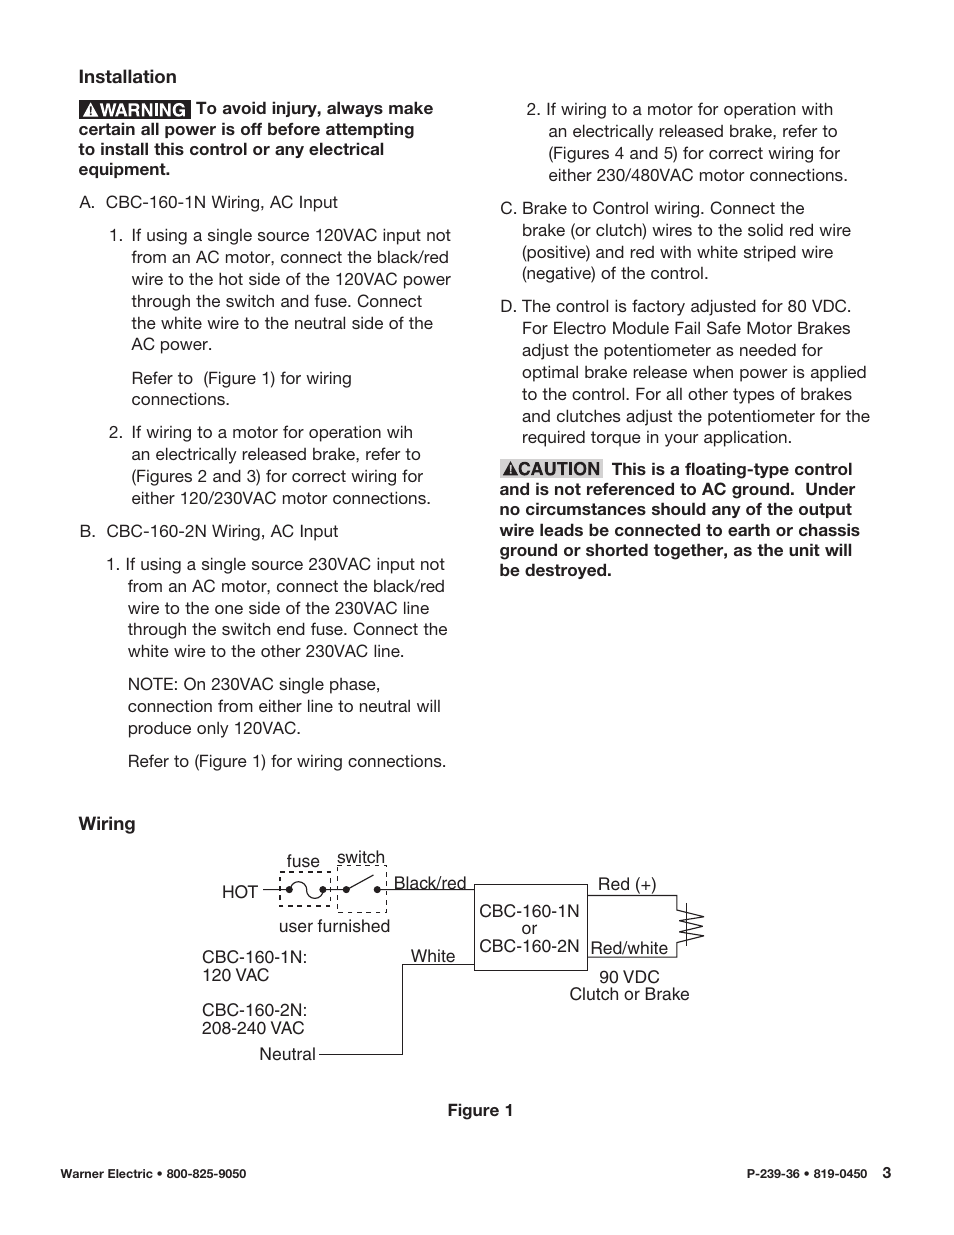 Warner Electric Cbc 160 2n User Manual Page 3 6 Also For Ac Motor Wiring Red Black White Blue 1n